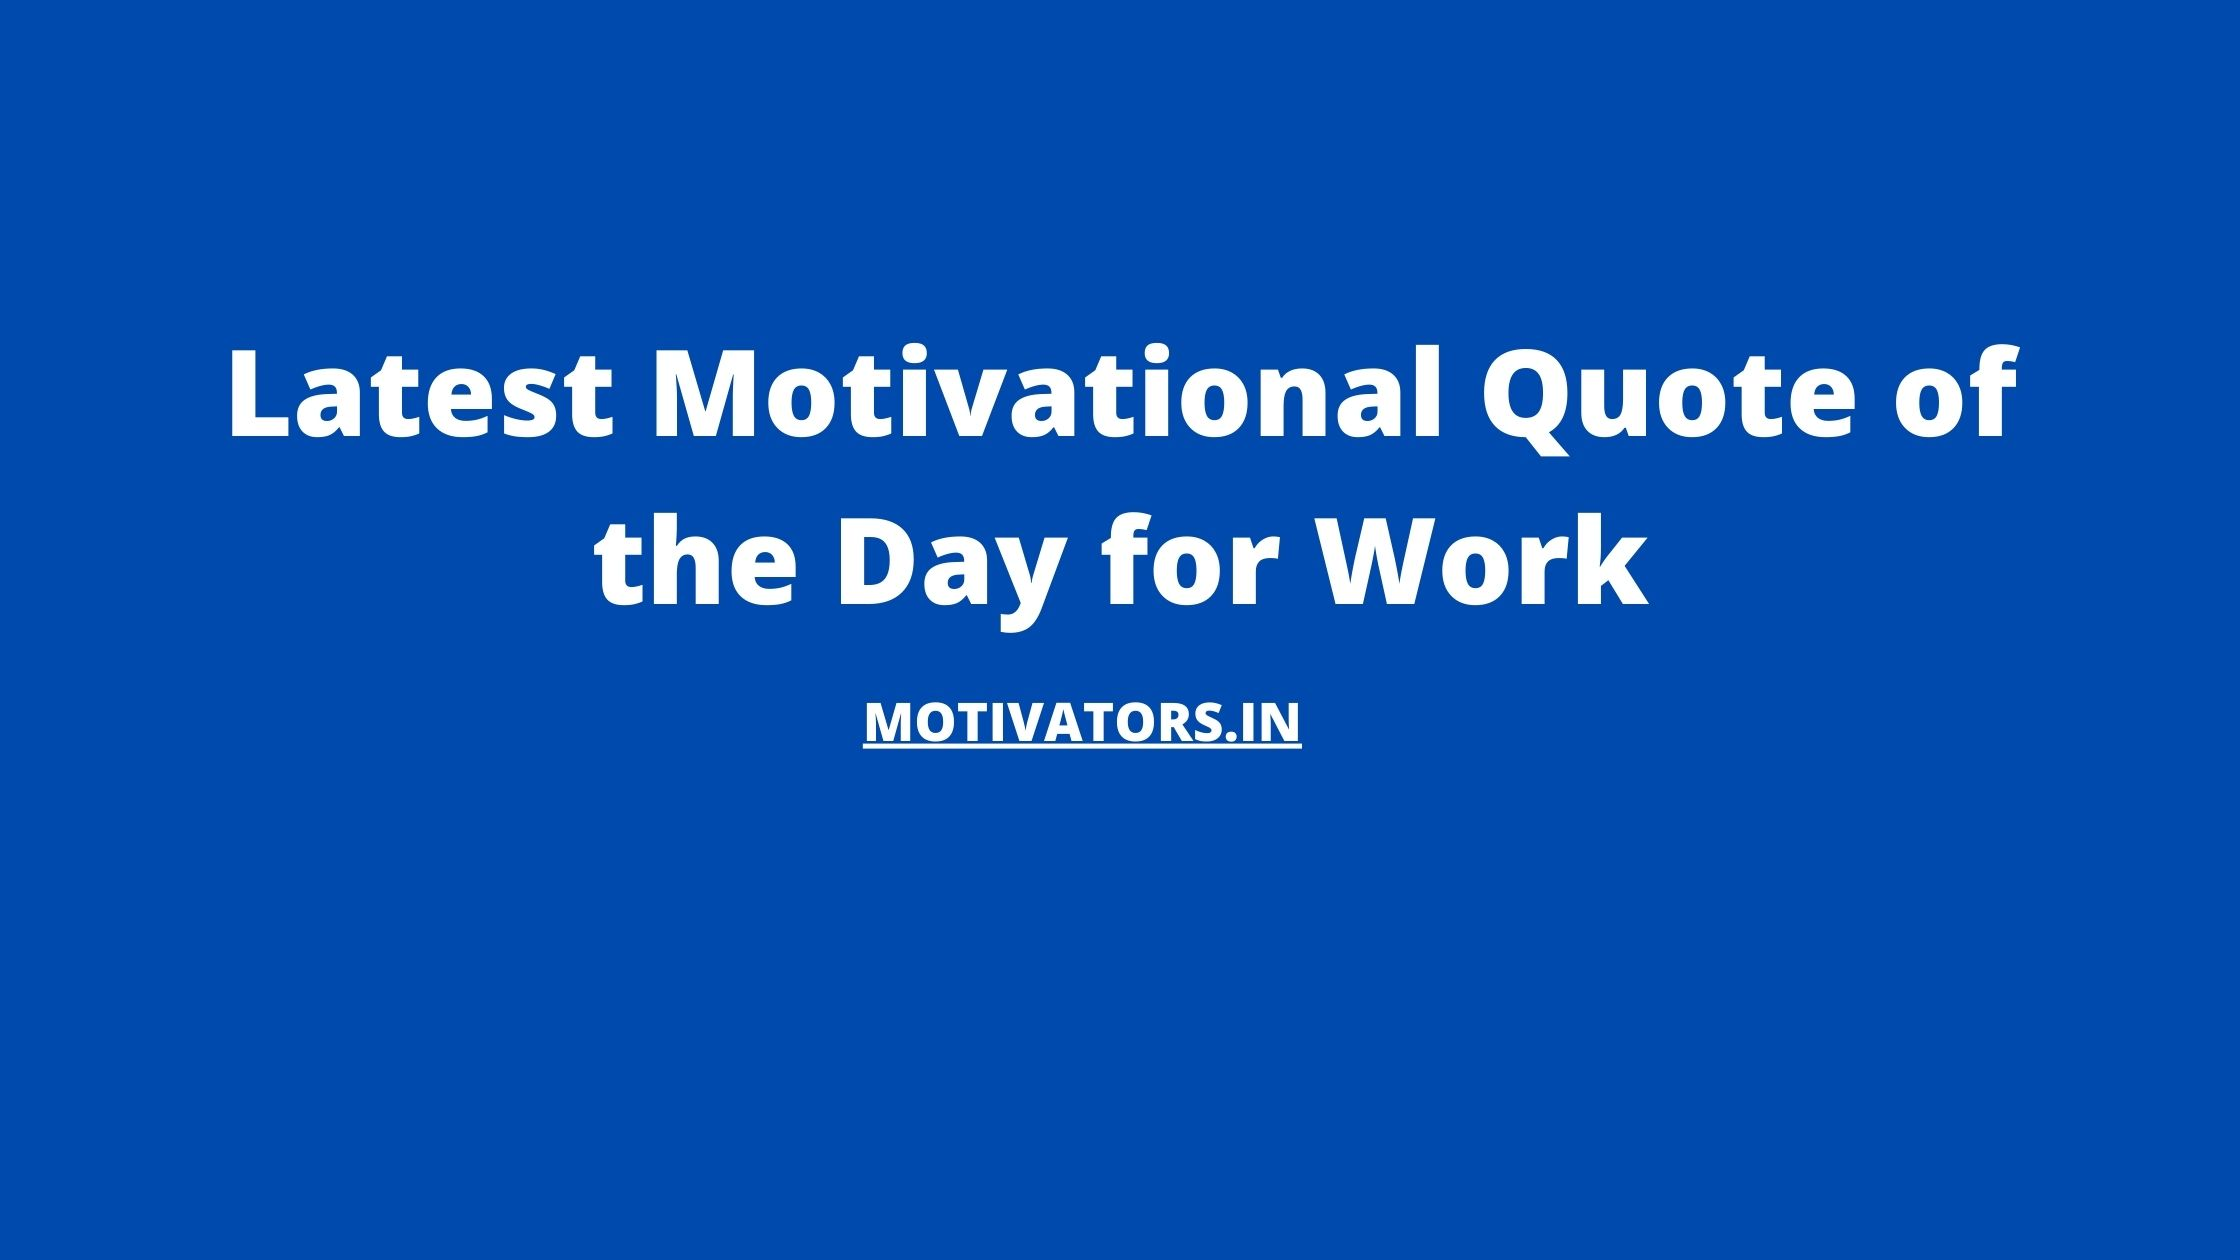 Quote of the Day for Work 1